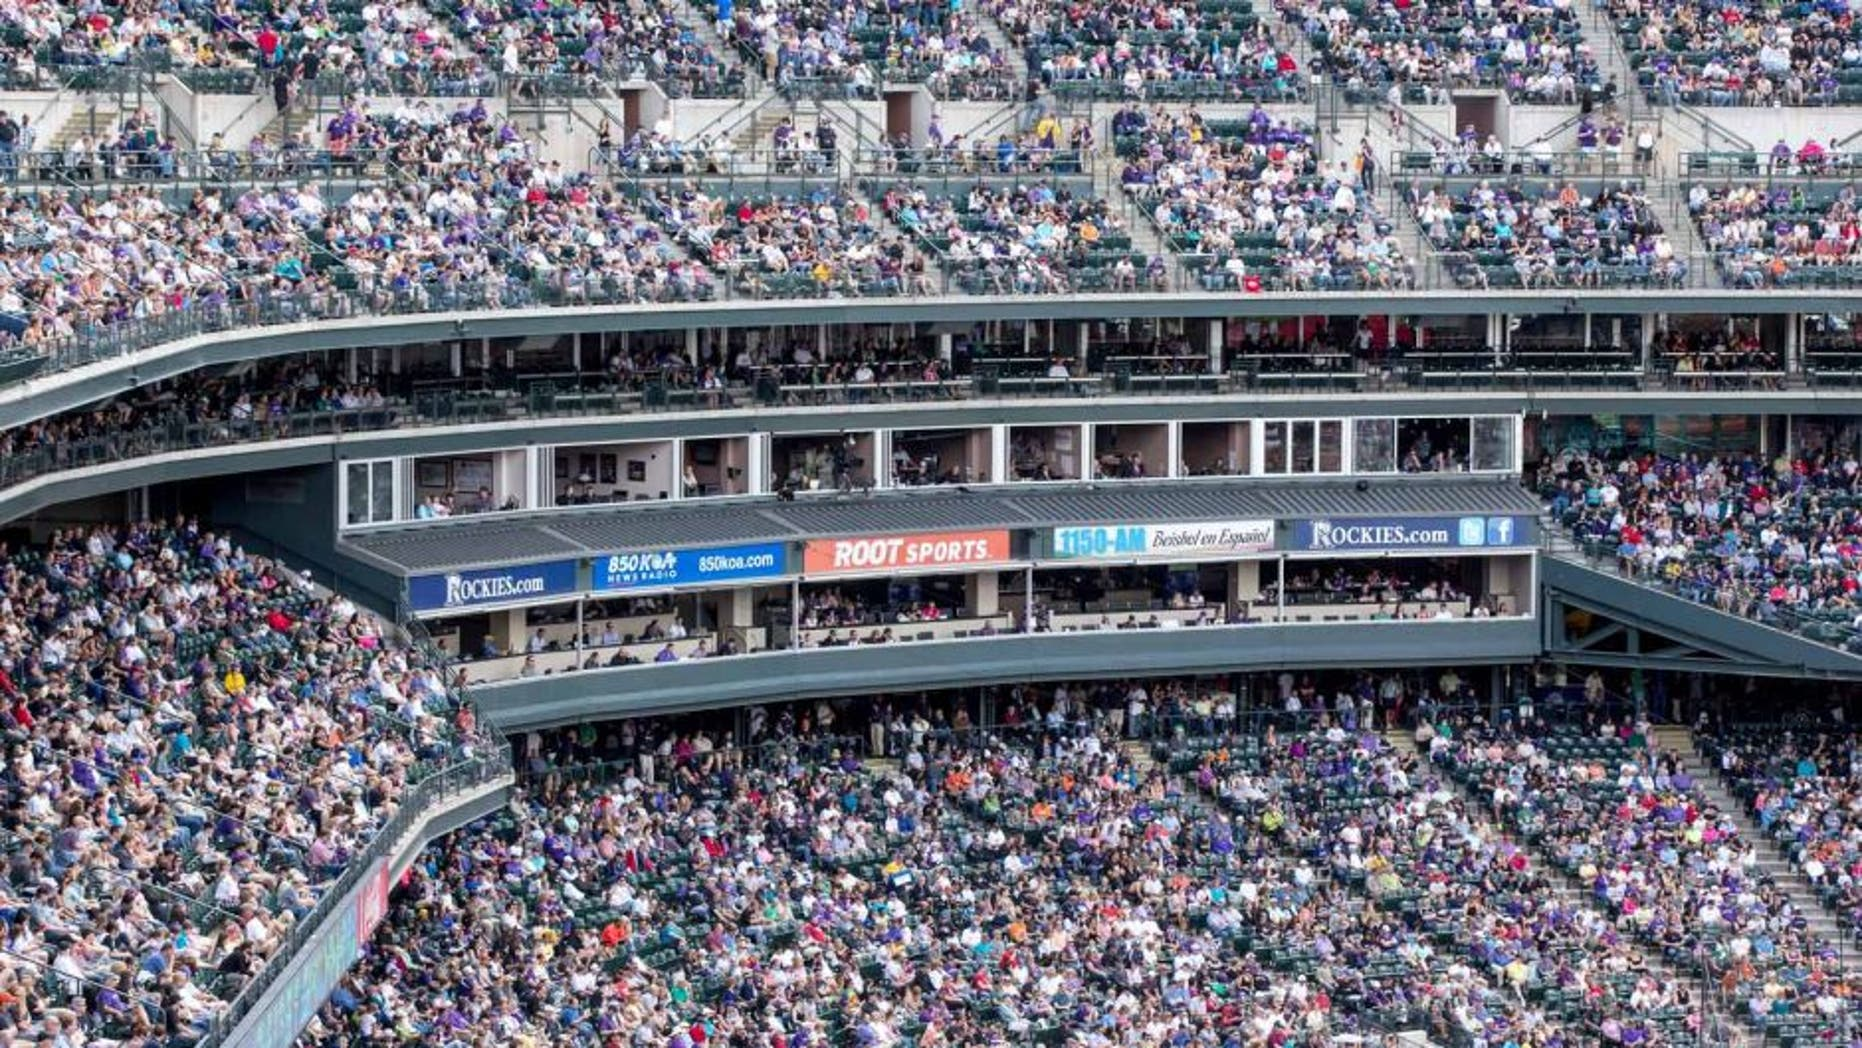 DENVER, CO - MAY 19: A general view of the stadium as fans watch the San Francisco Giants play the Colorado Rockies at Coors Field on May 19, 2013 in Denver, Colorado. The Rockies defeated the Giants 5-0. (Photo by Justin Edmonds/Getty Images)